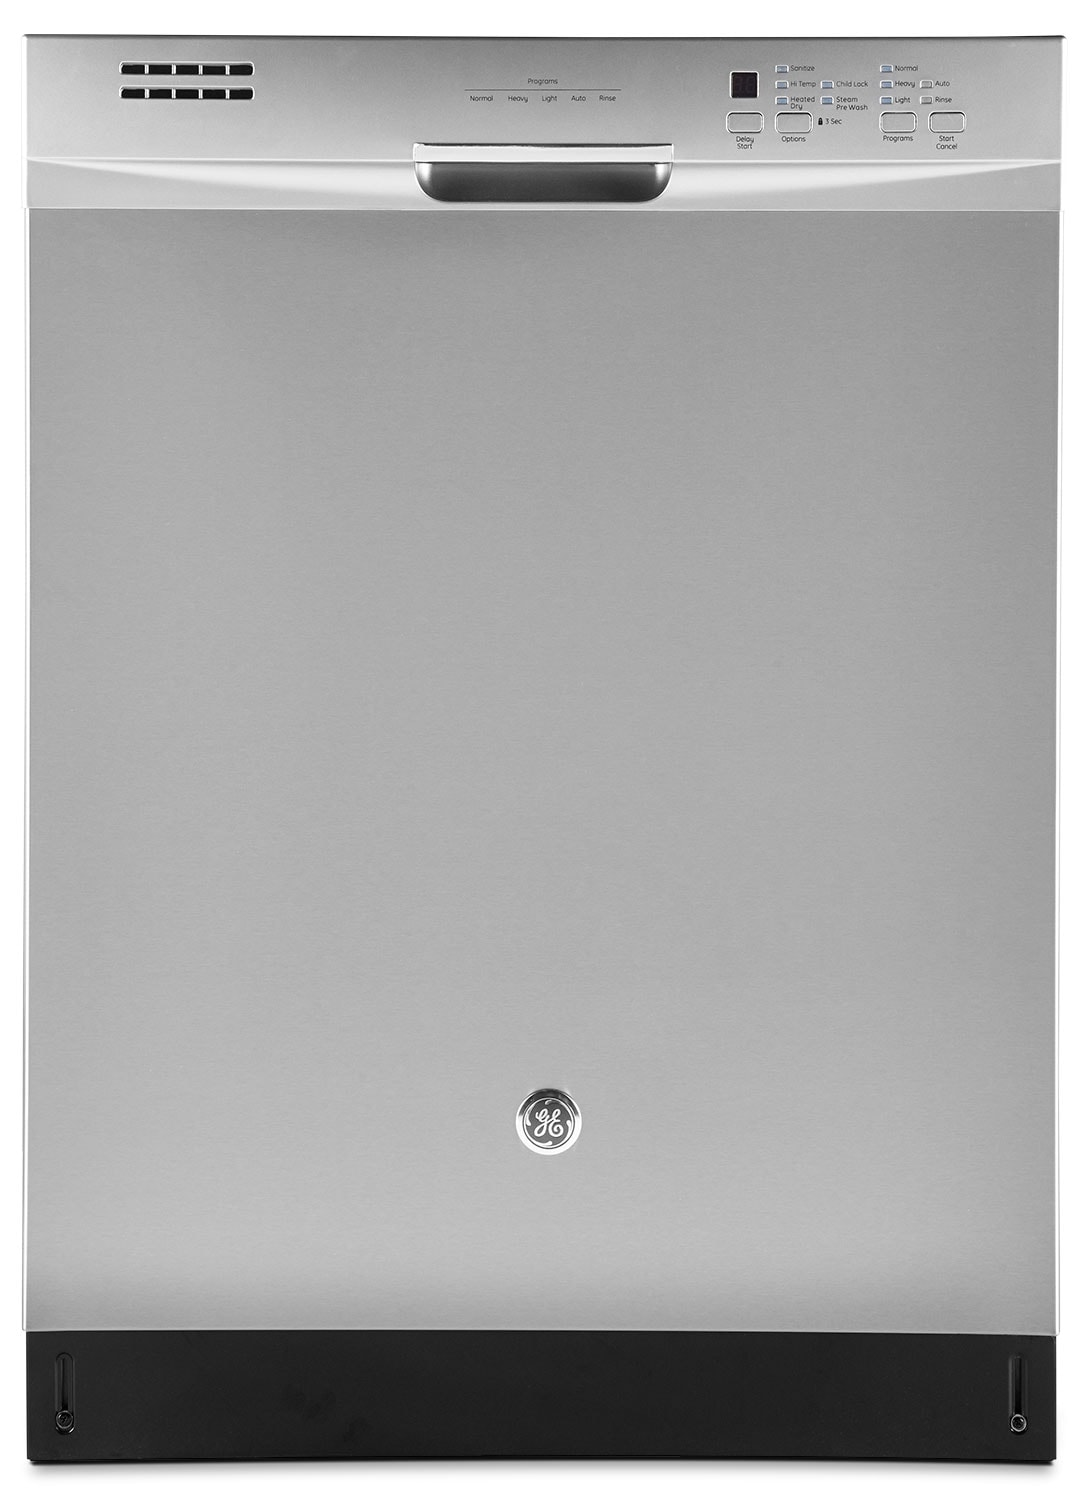 GE Tall-Tub Built-In Dishwasher with Front Controls – GDF630SSKSS